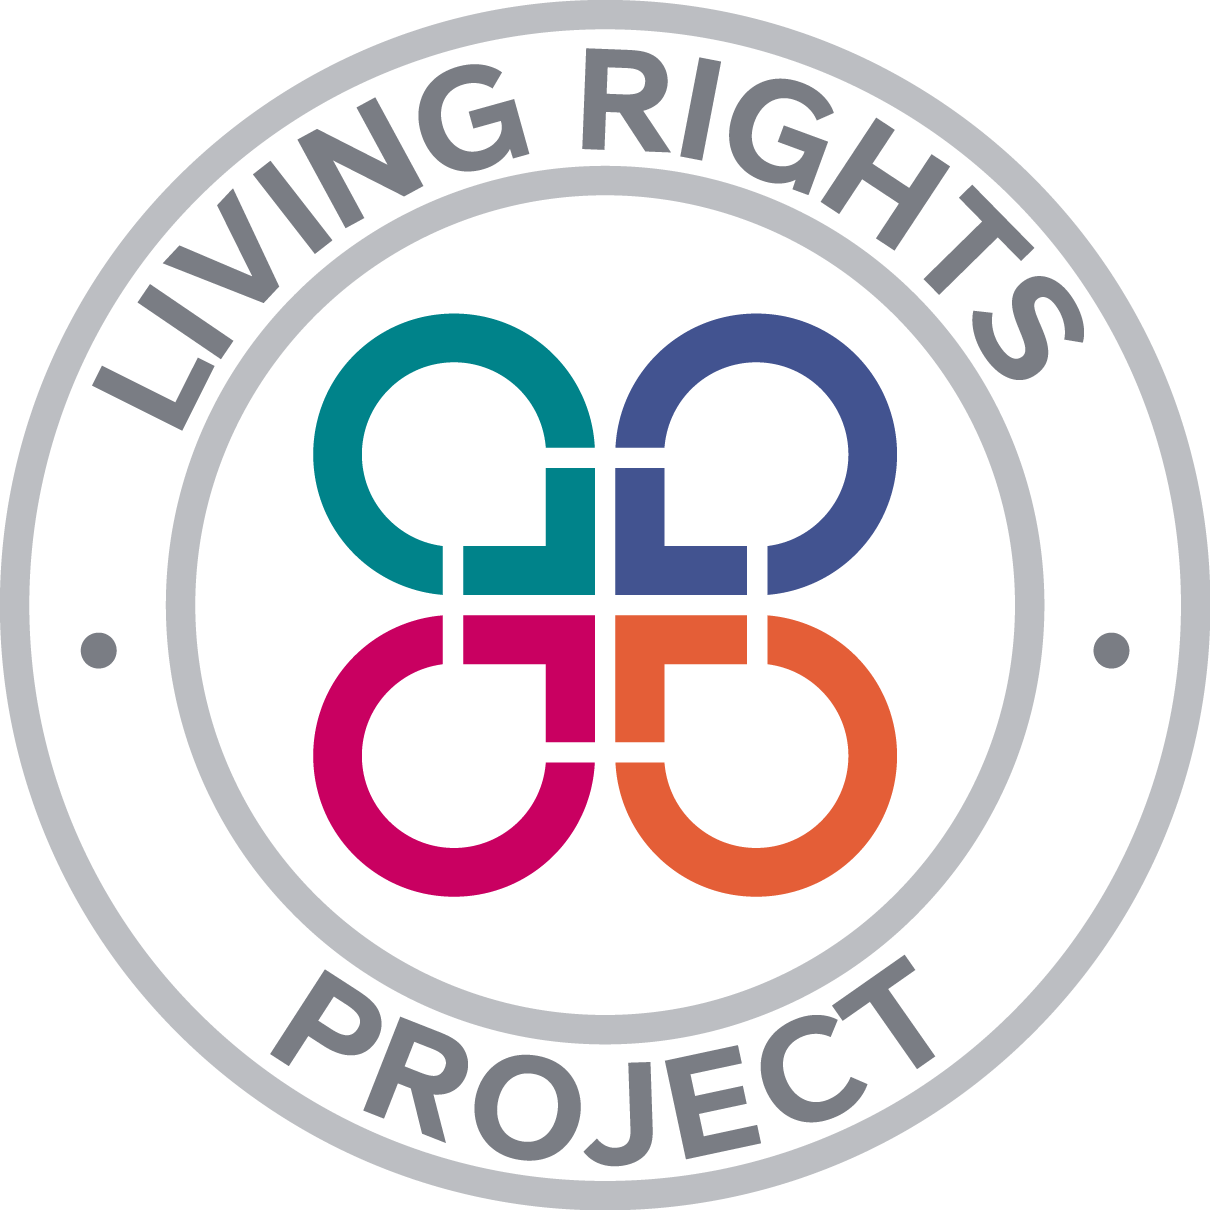 Living Rights Logo